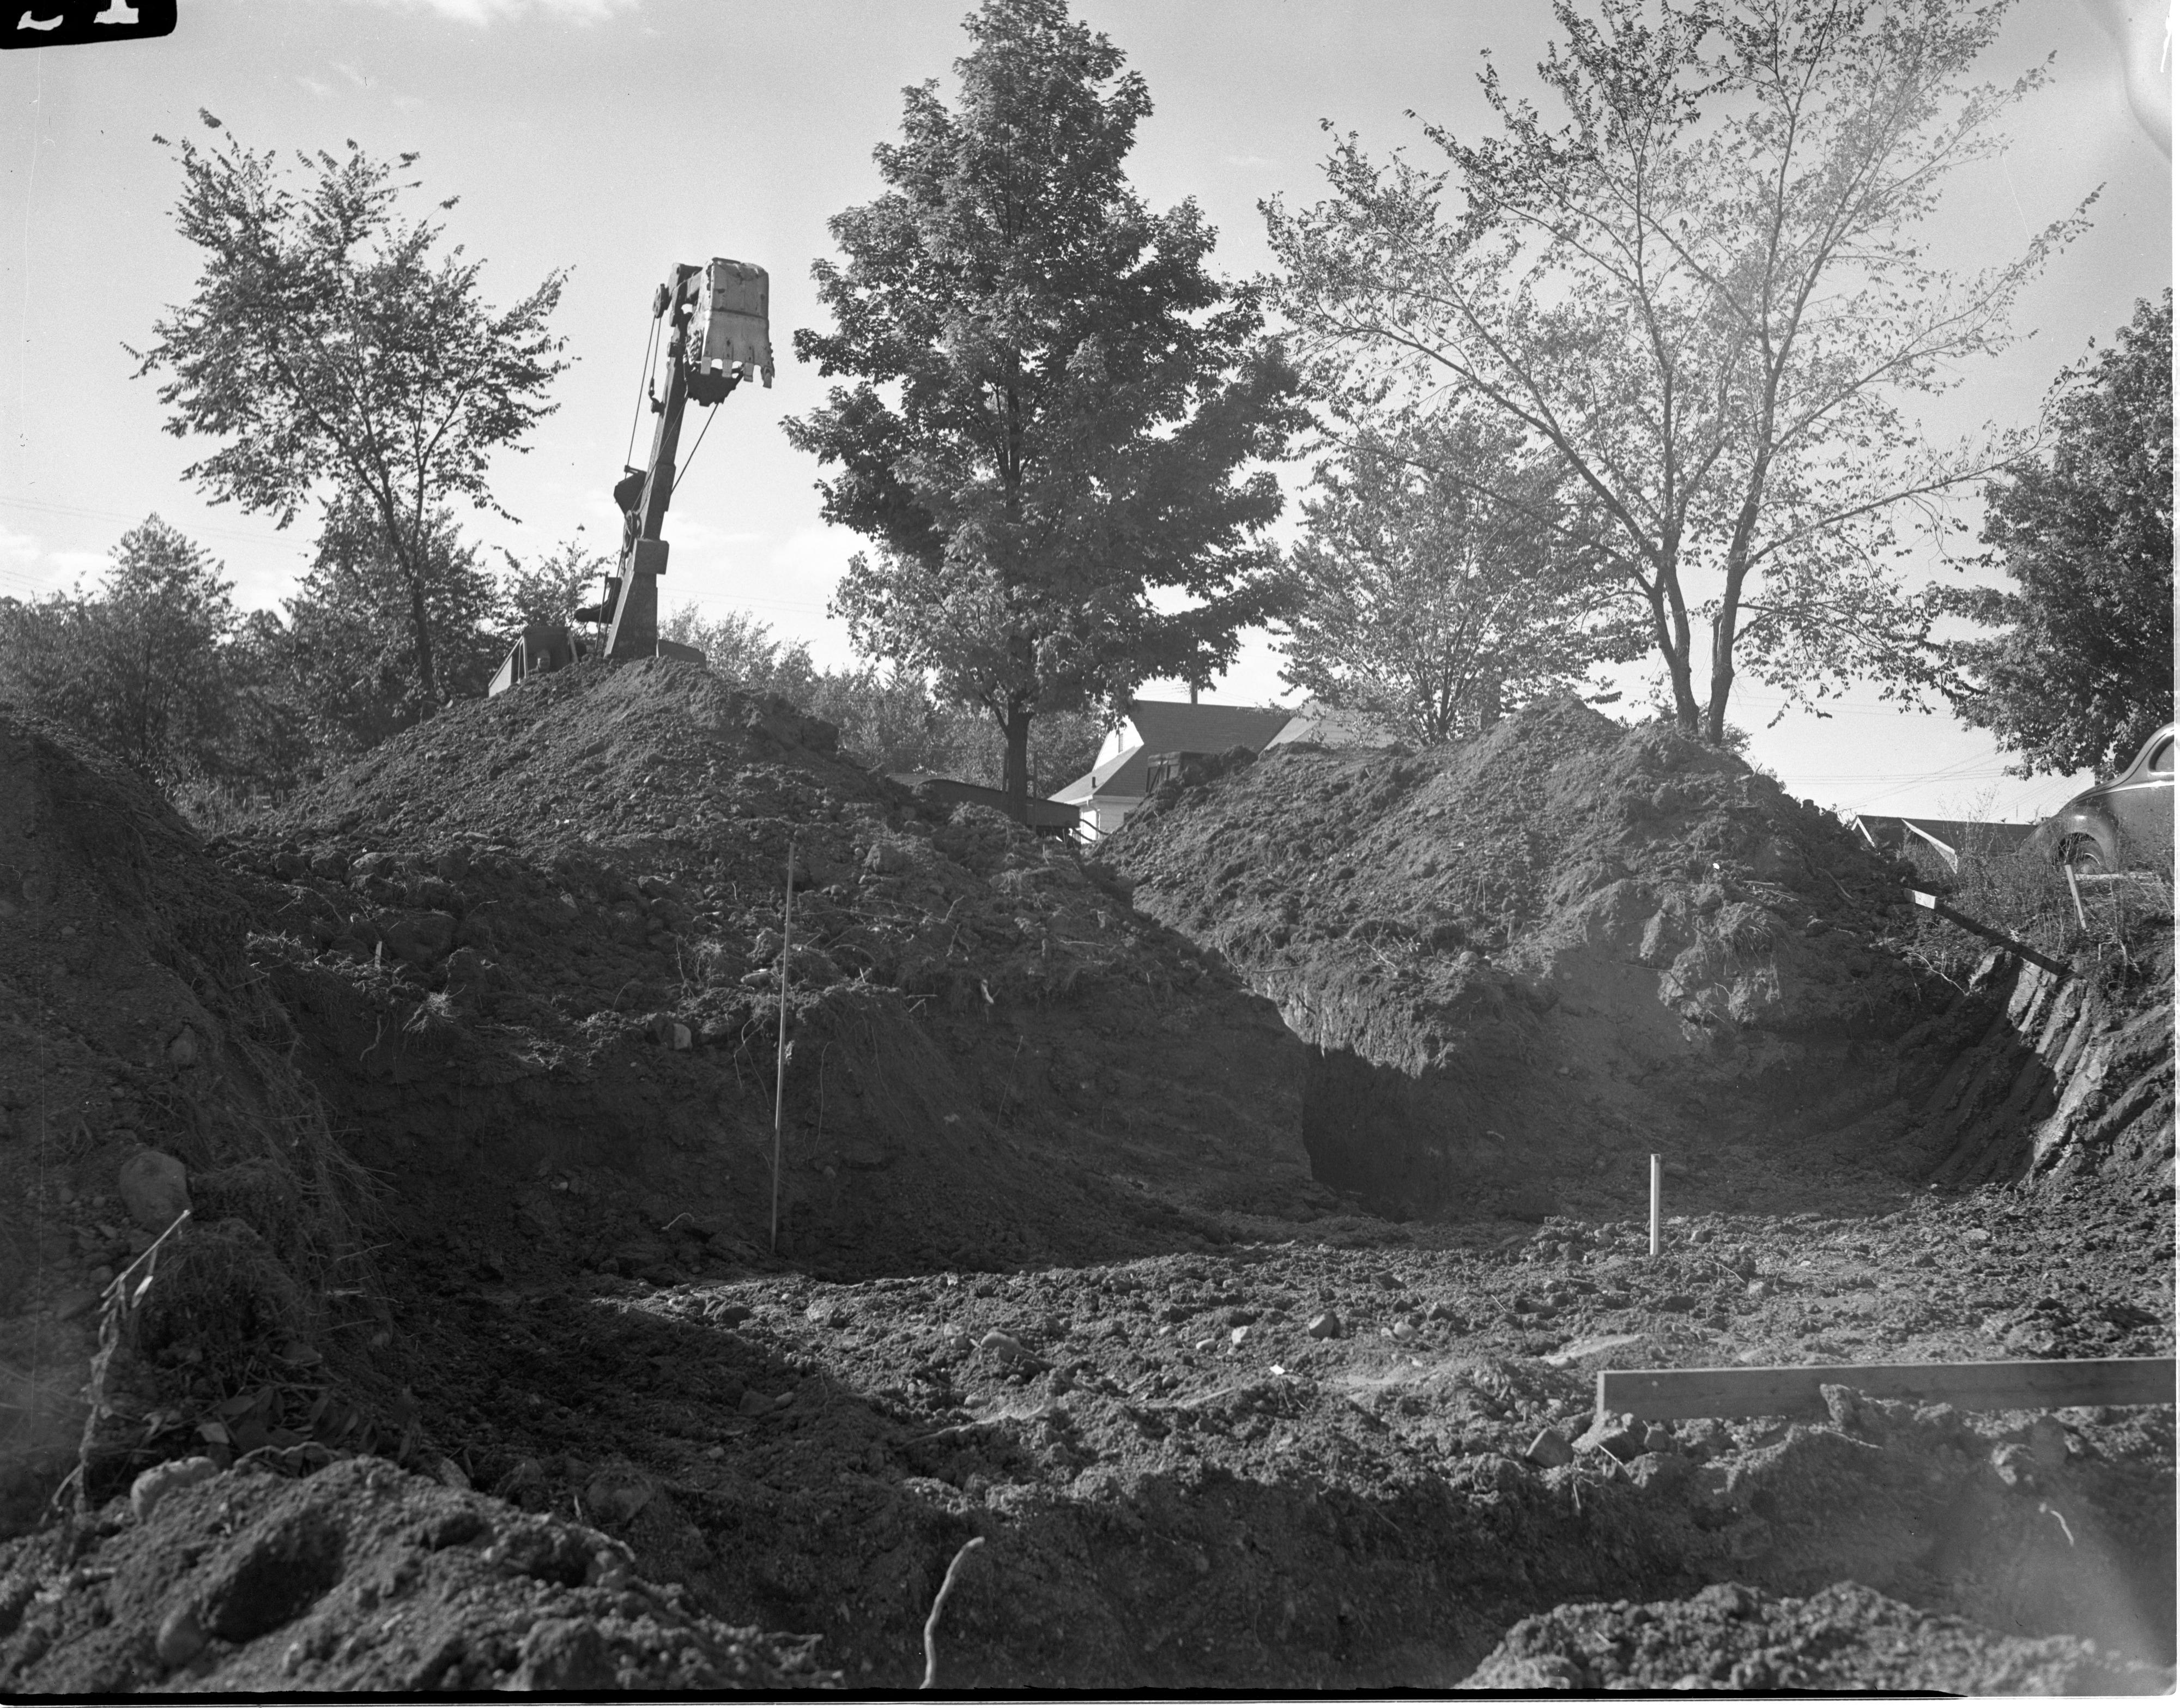 Excavation Of 803 Mt. Pleasant Avenue - Home Being Built By Ann Arbor High School Students, October 1945 image